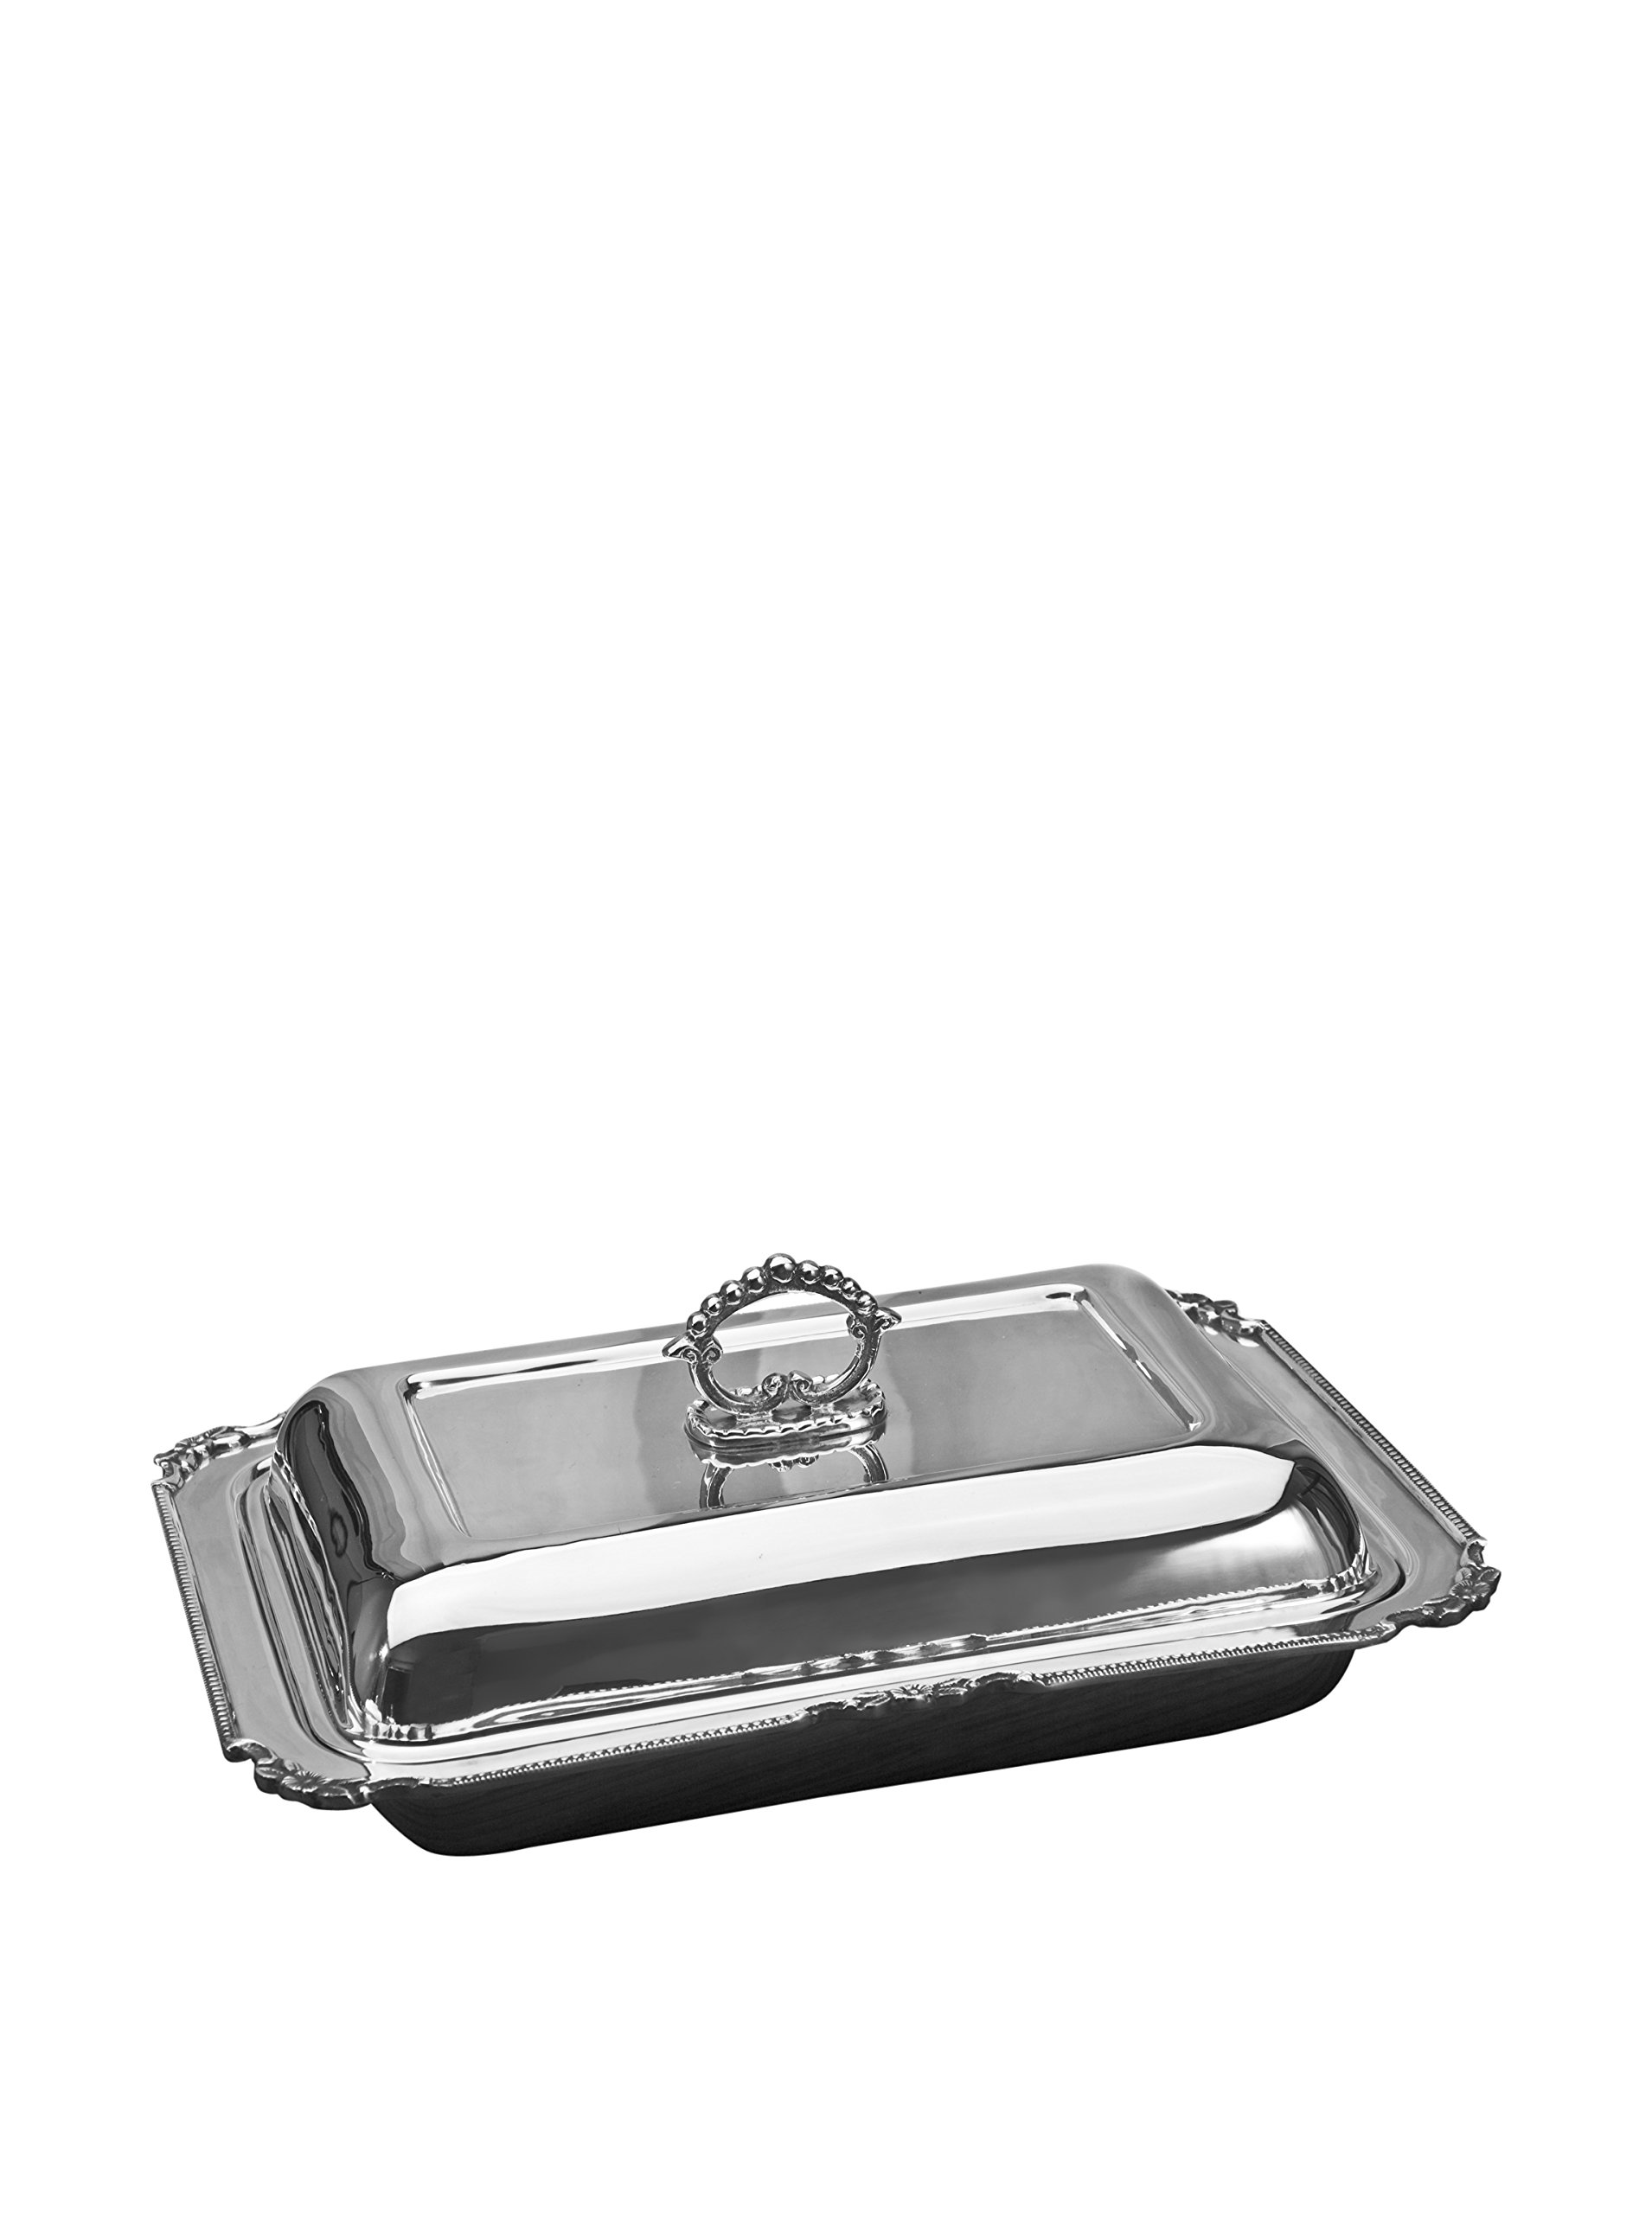 RECT SERVING DISH 12'' X 9'' - RECT COVERED DISH 12 X 9